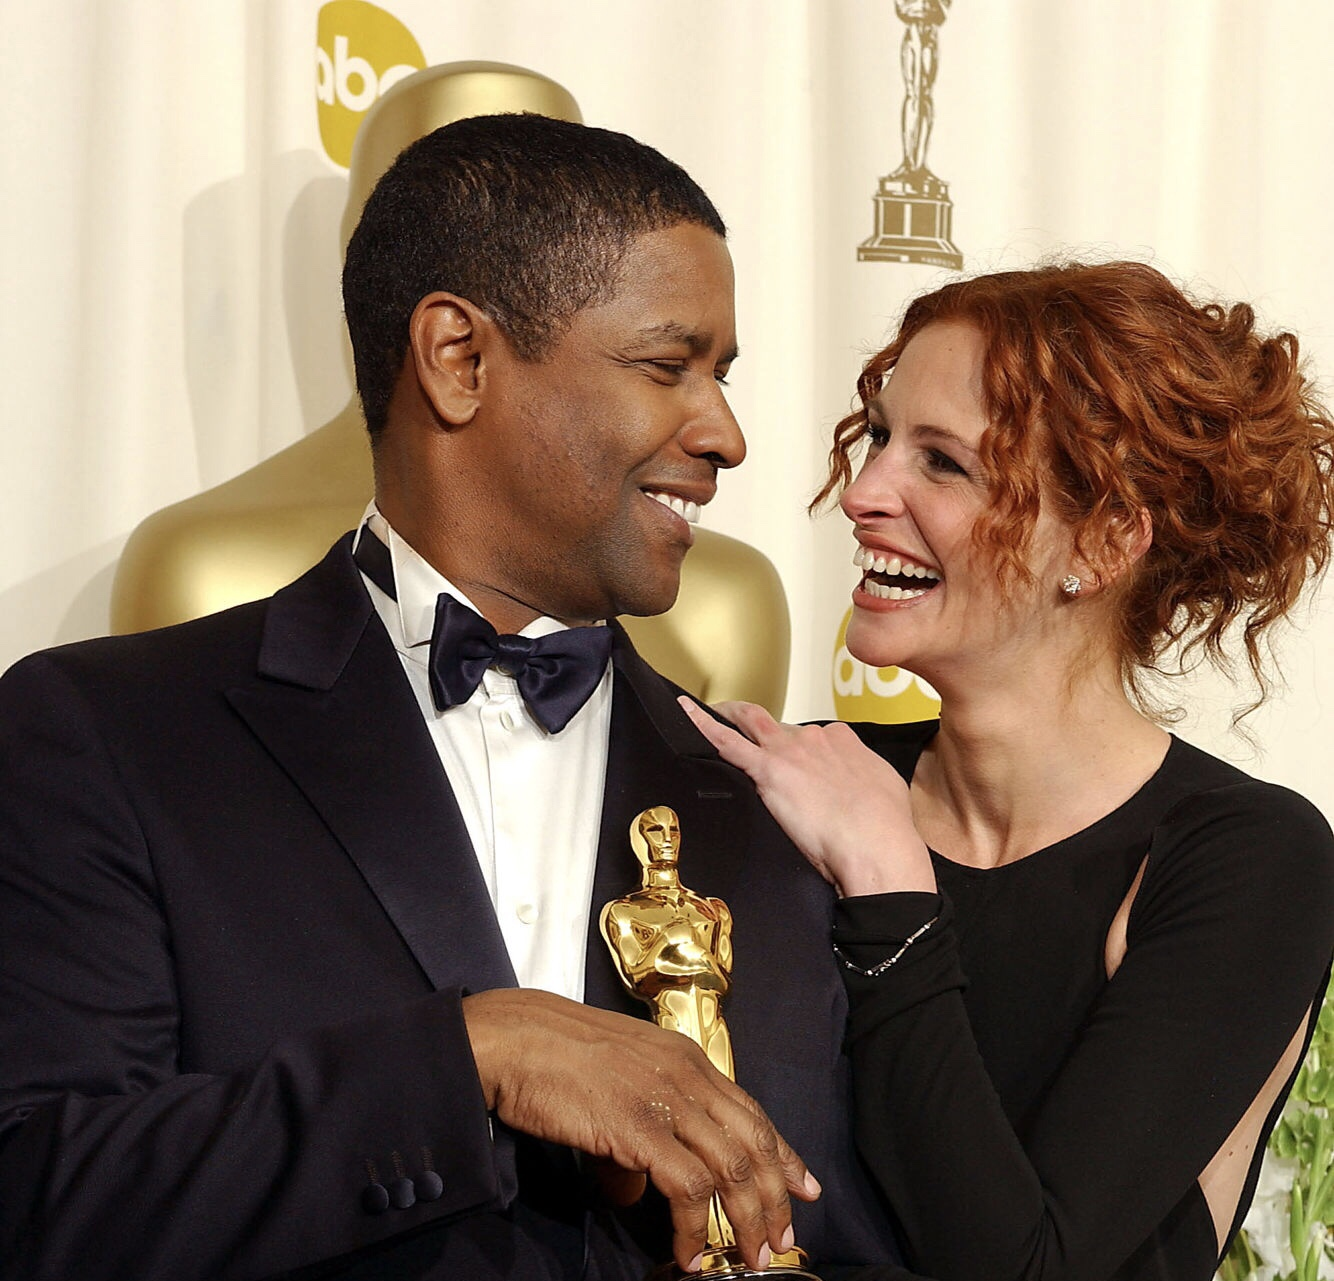 Denzel Washington and Julia Roberts Will Star in Netflix Thriller 'Leave the World Behind'